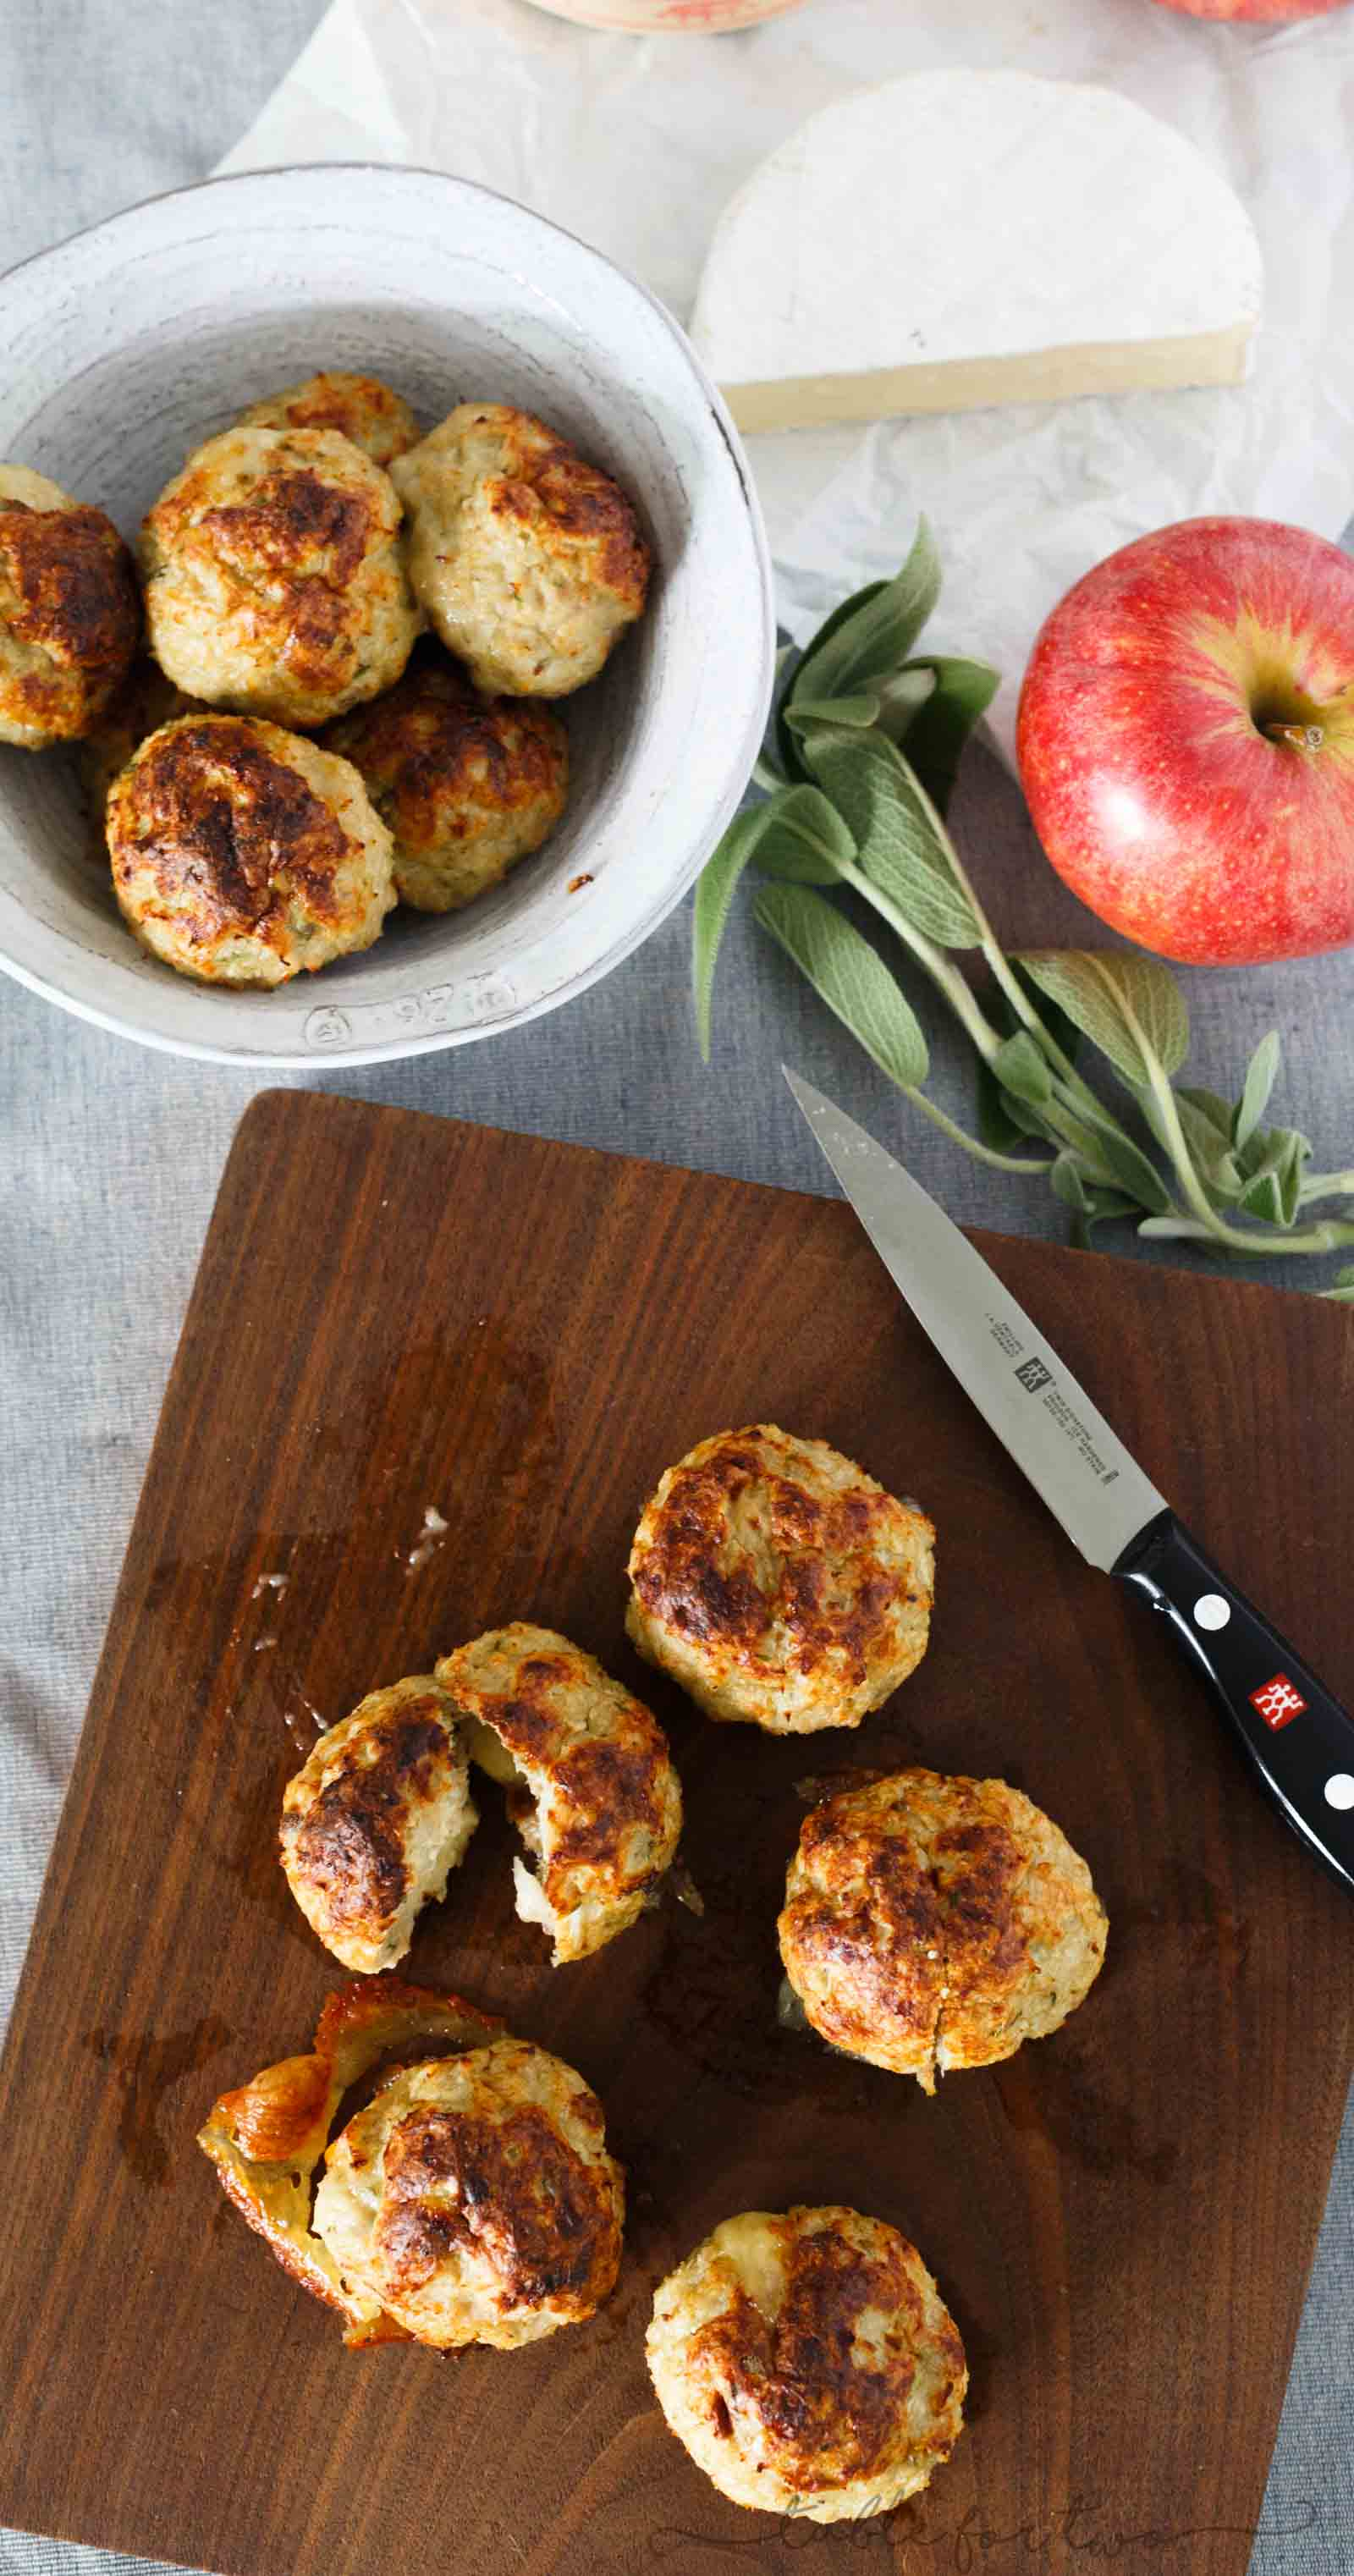 Stuffing anything with cheese automatically makes it exponentially better. These stuffed cheesy chicken apple and sage meatballs give the element of surprise with brie in the center of these!